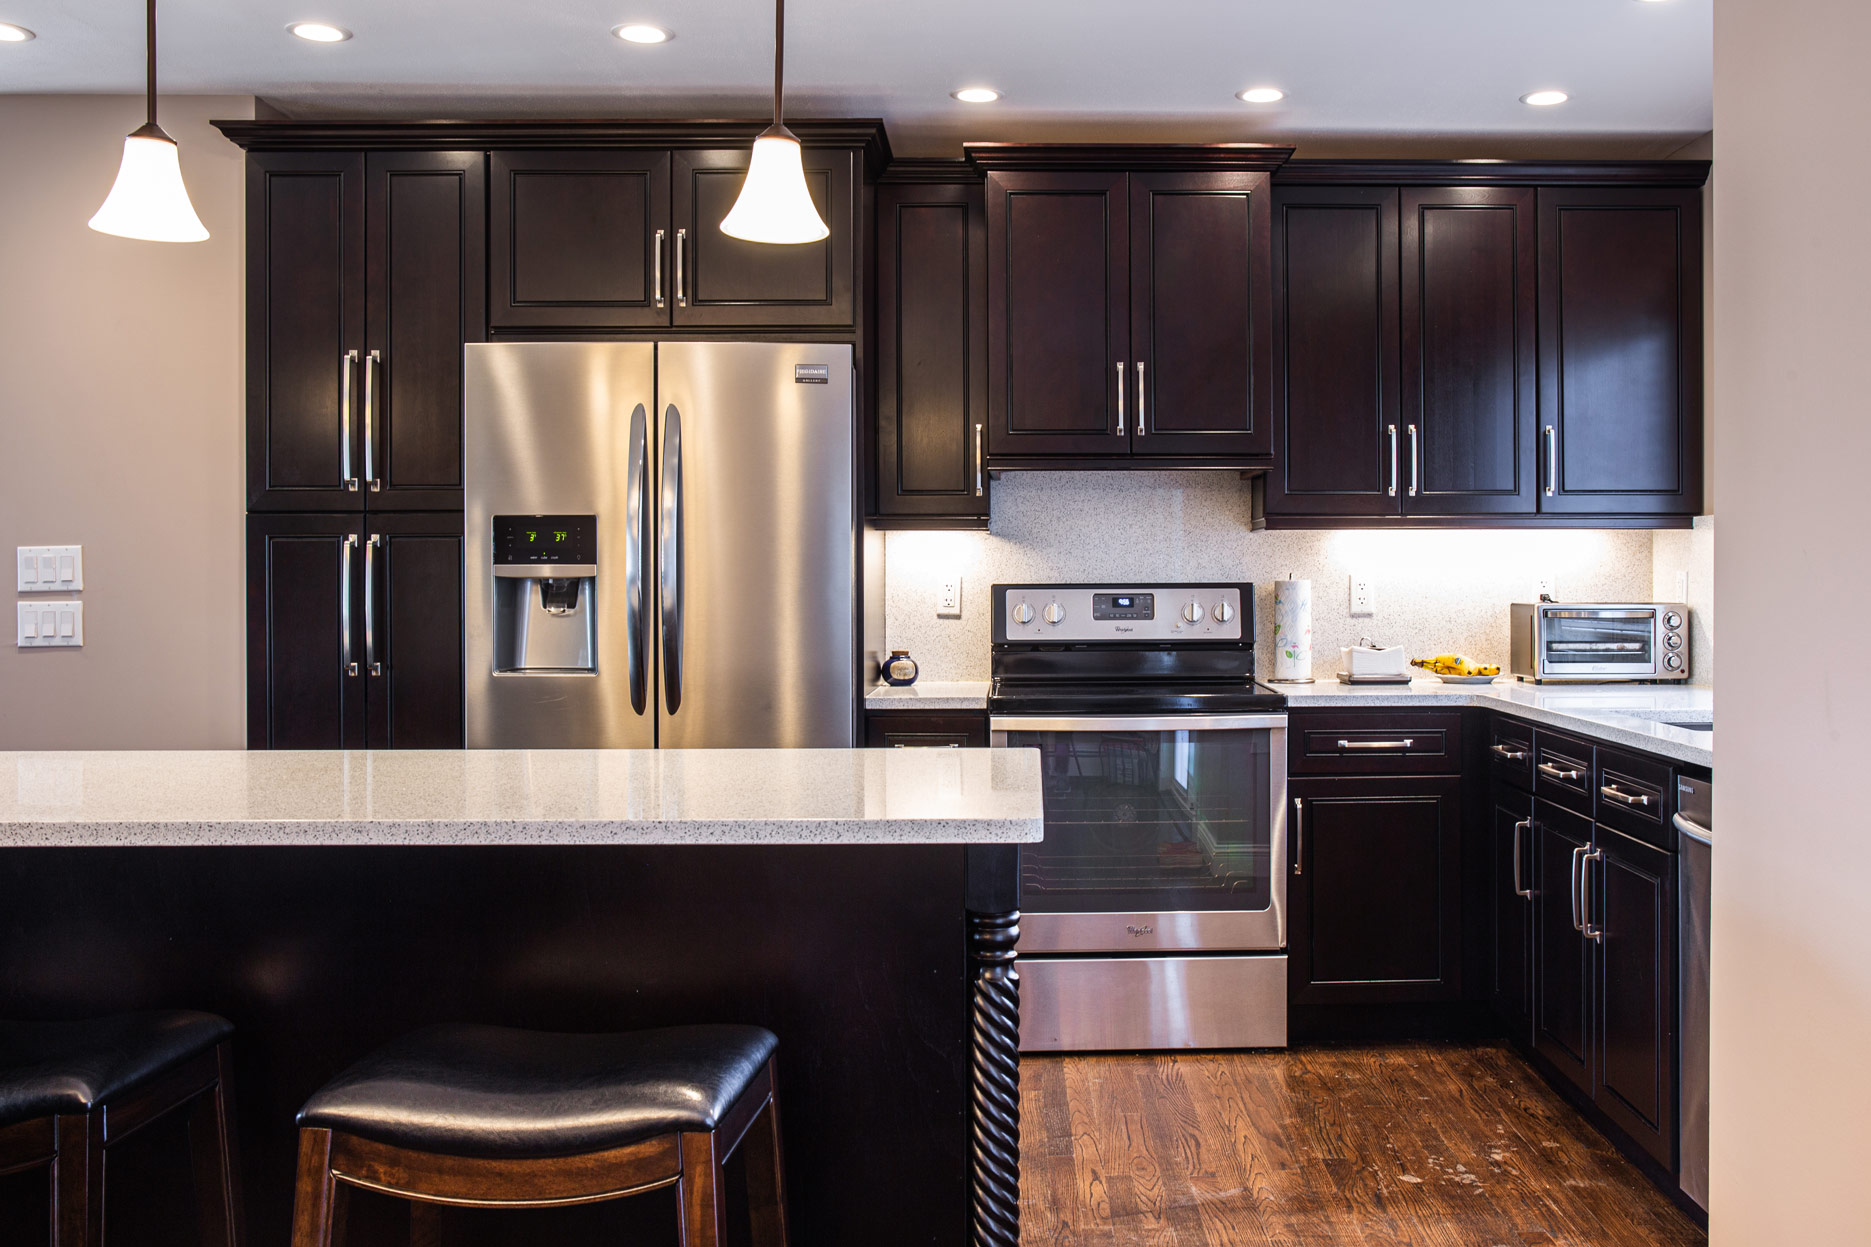 k8 espresso j k cabinetry in 2020 maple kitchen cabinets online kitchen cabinets kitchen on j kitchen id=65540